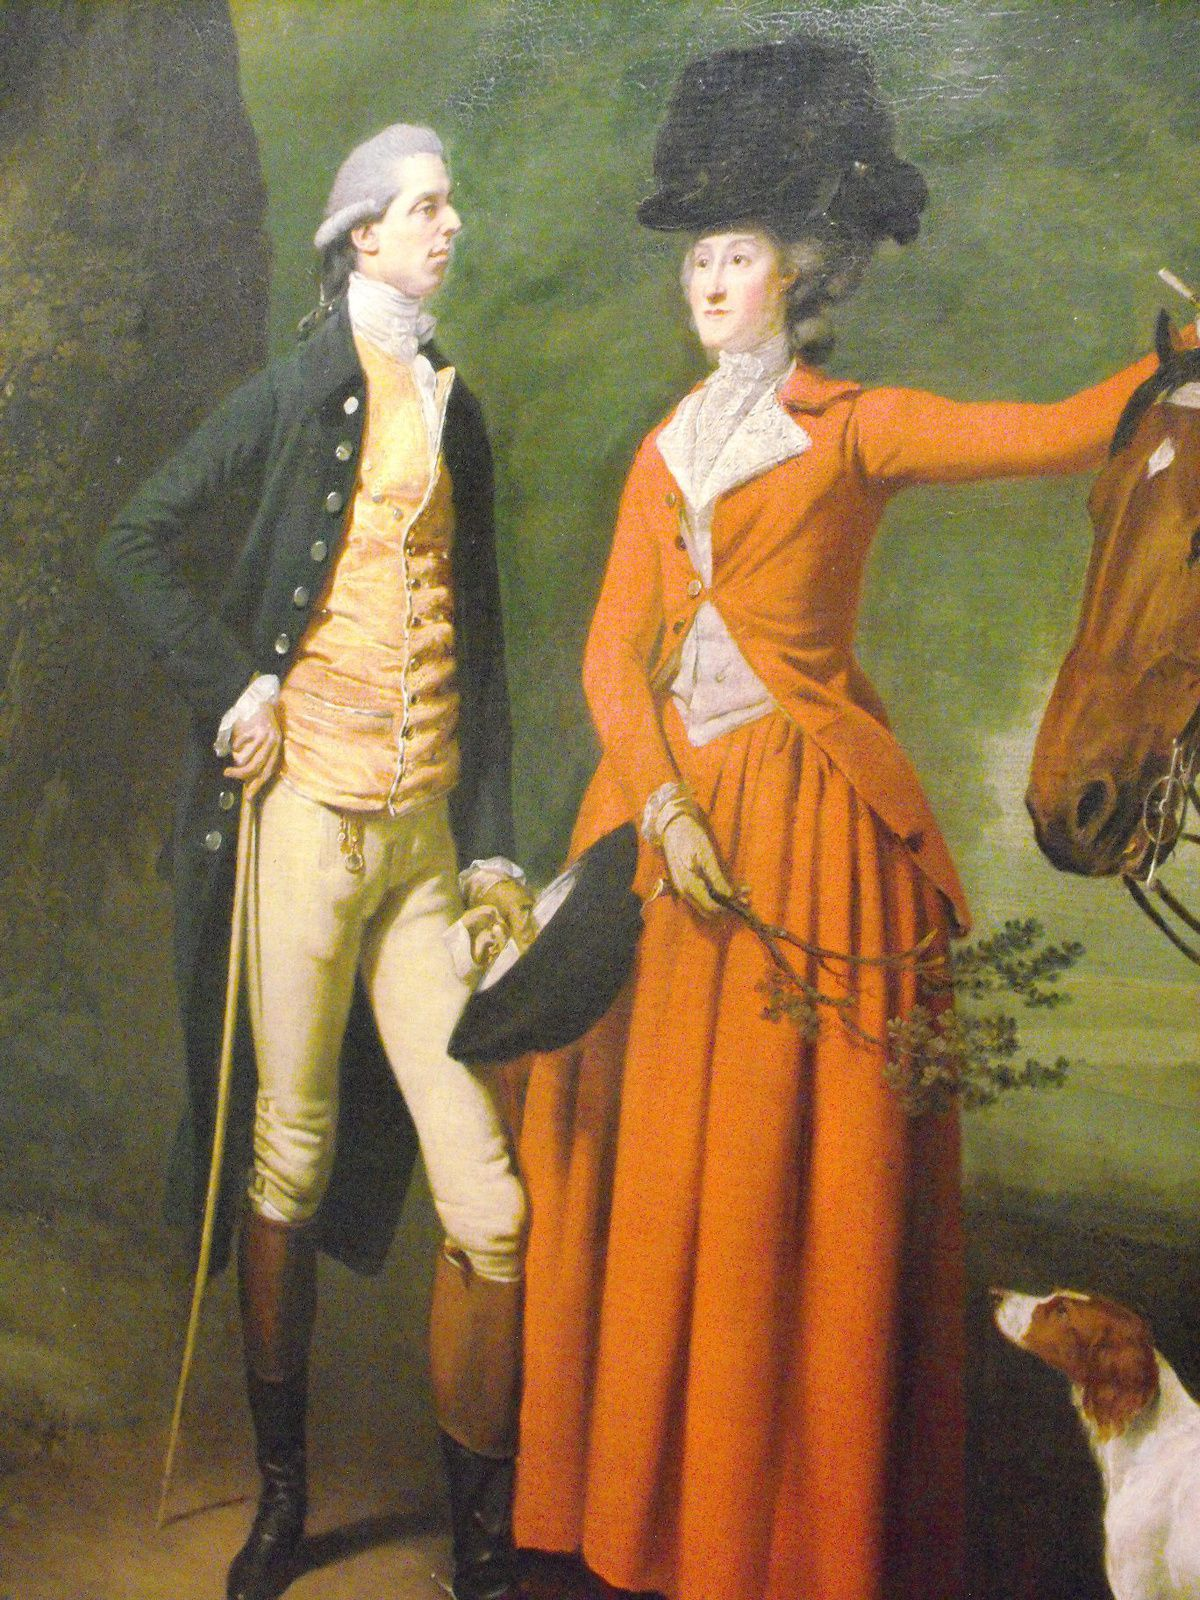 Double Portrait of Henry and Mary Styleman by Johann Zoffany, 1780 - 1783